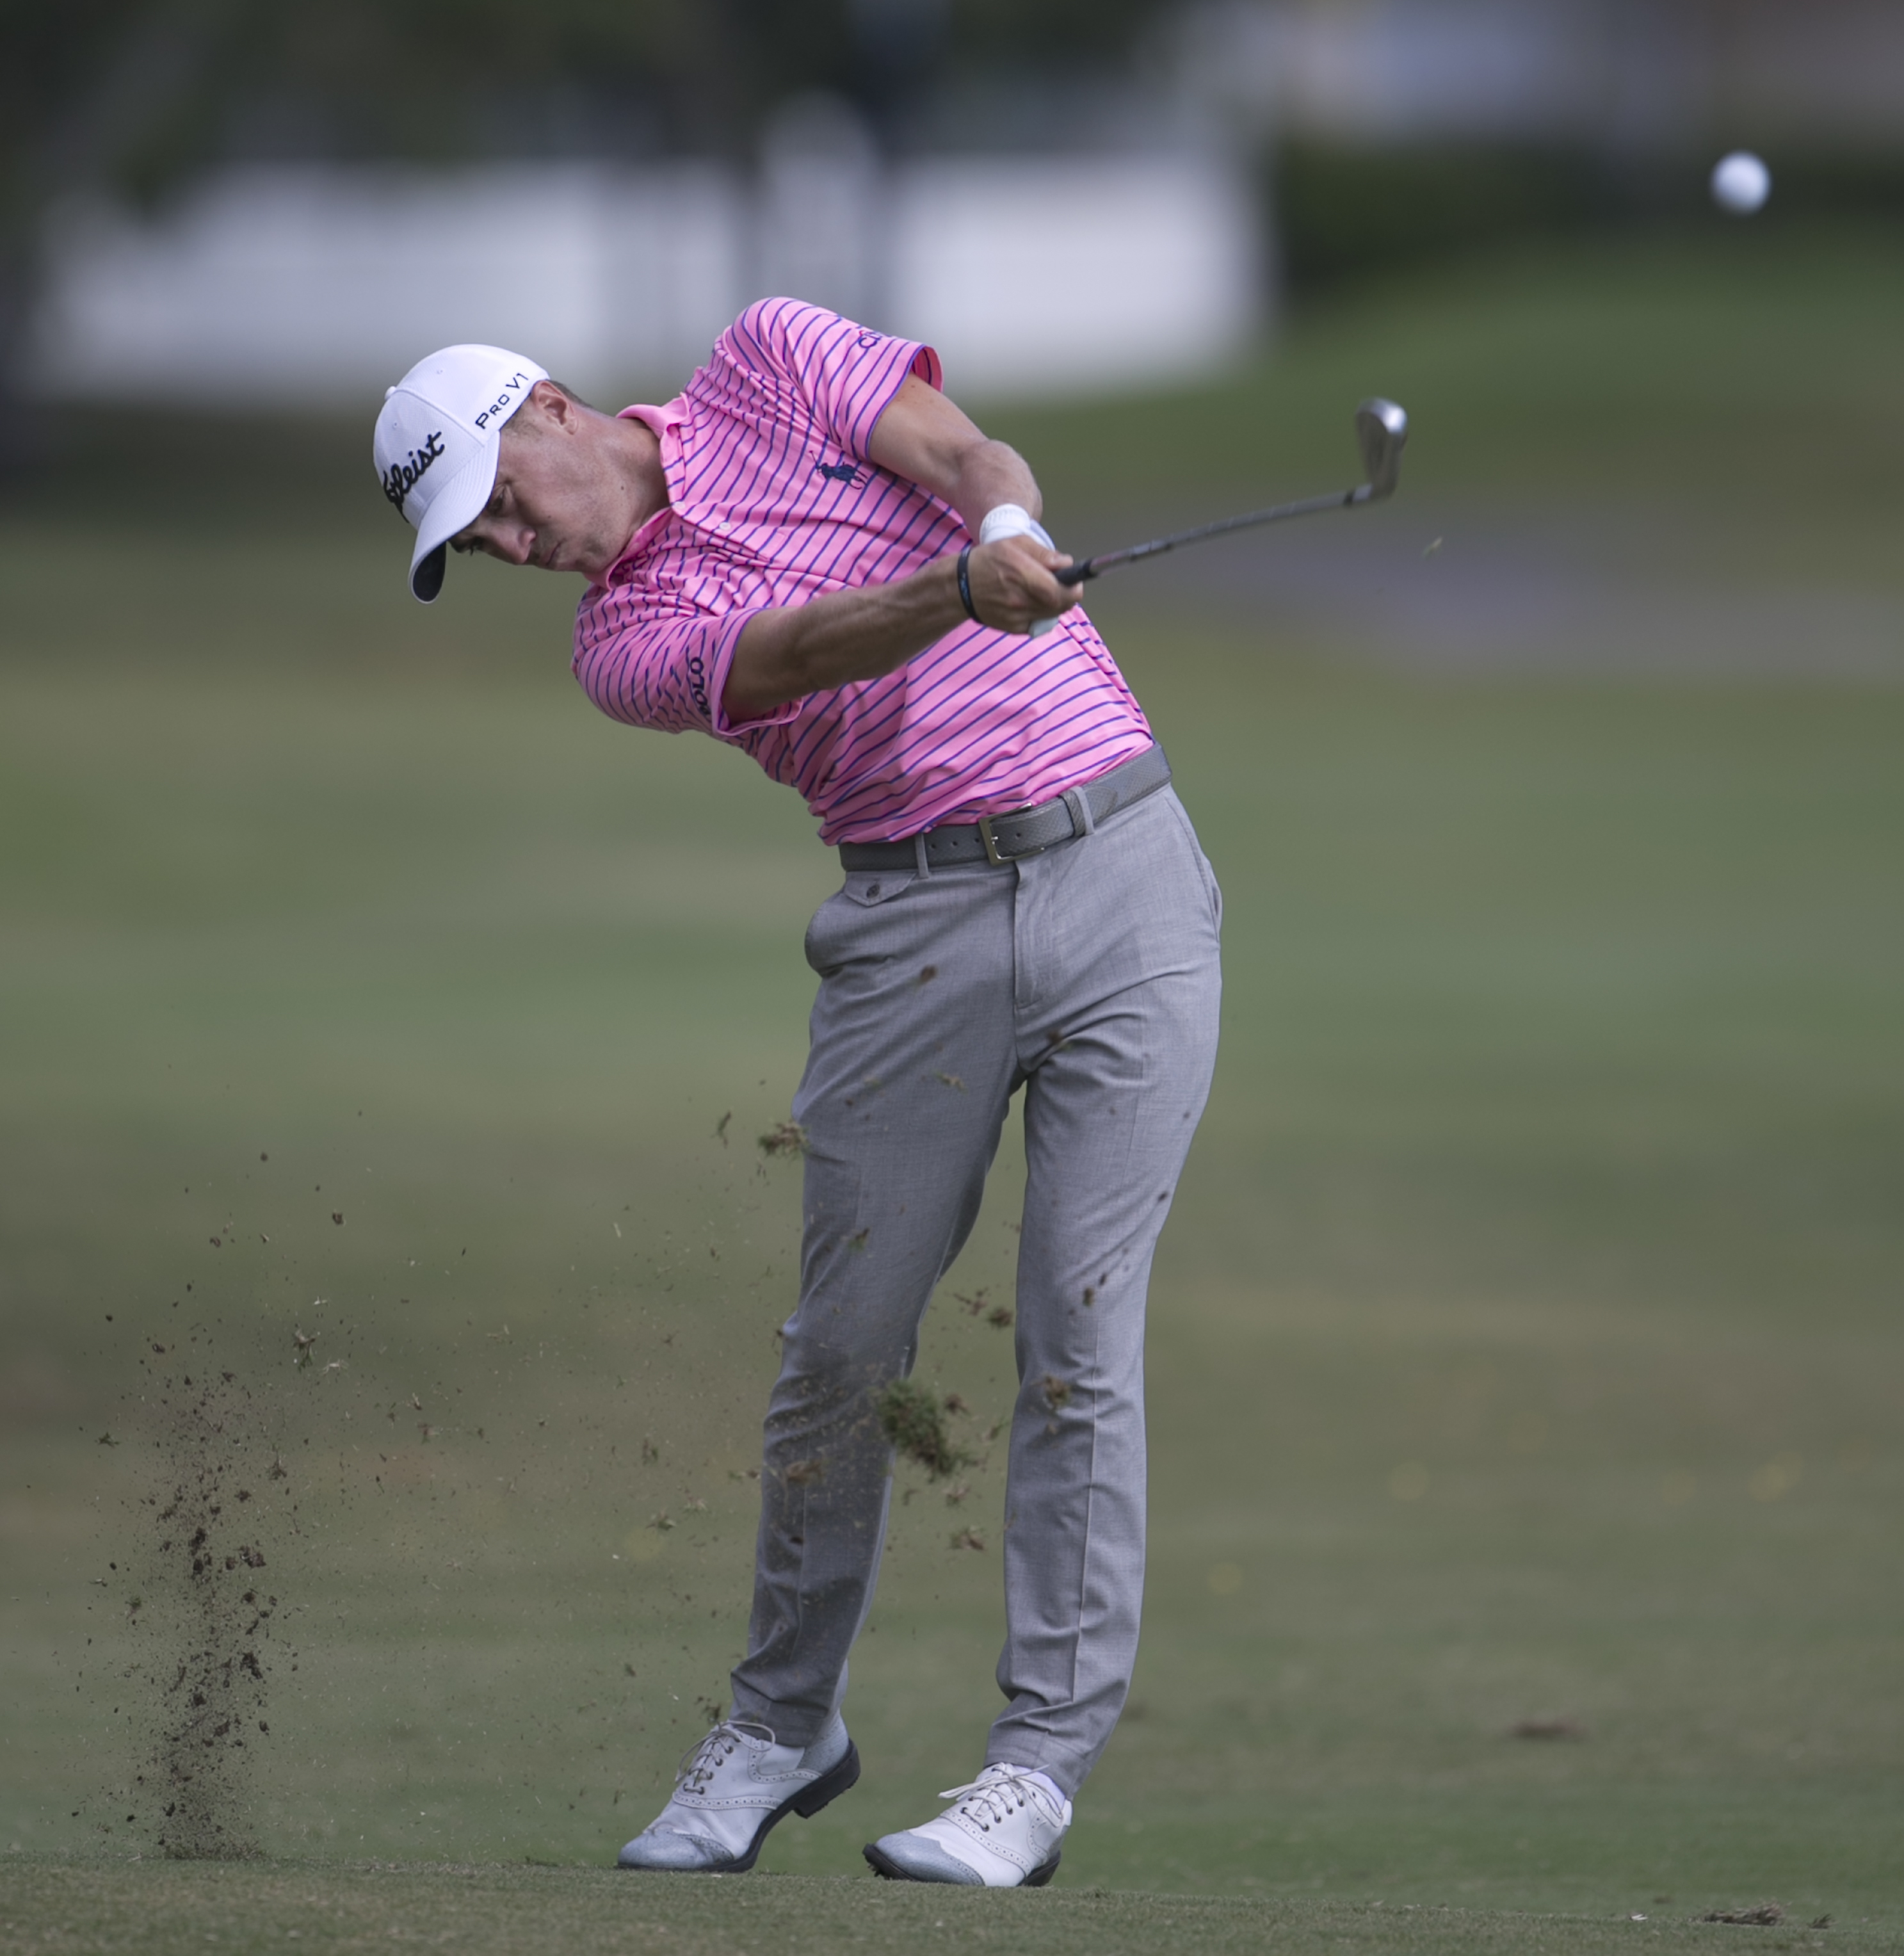 Justin Thomas hits his ball off the third fairway during the third round of the Sony Open golf tournament, Saturday, Jan. 14, 2017, in Honolulu. (AP Photo/Marco Garcia)